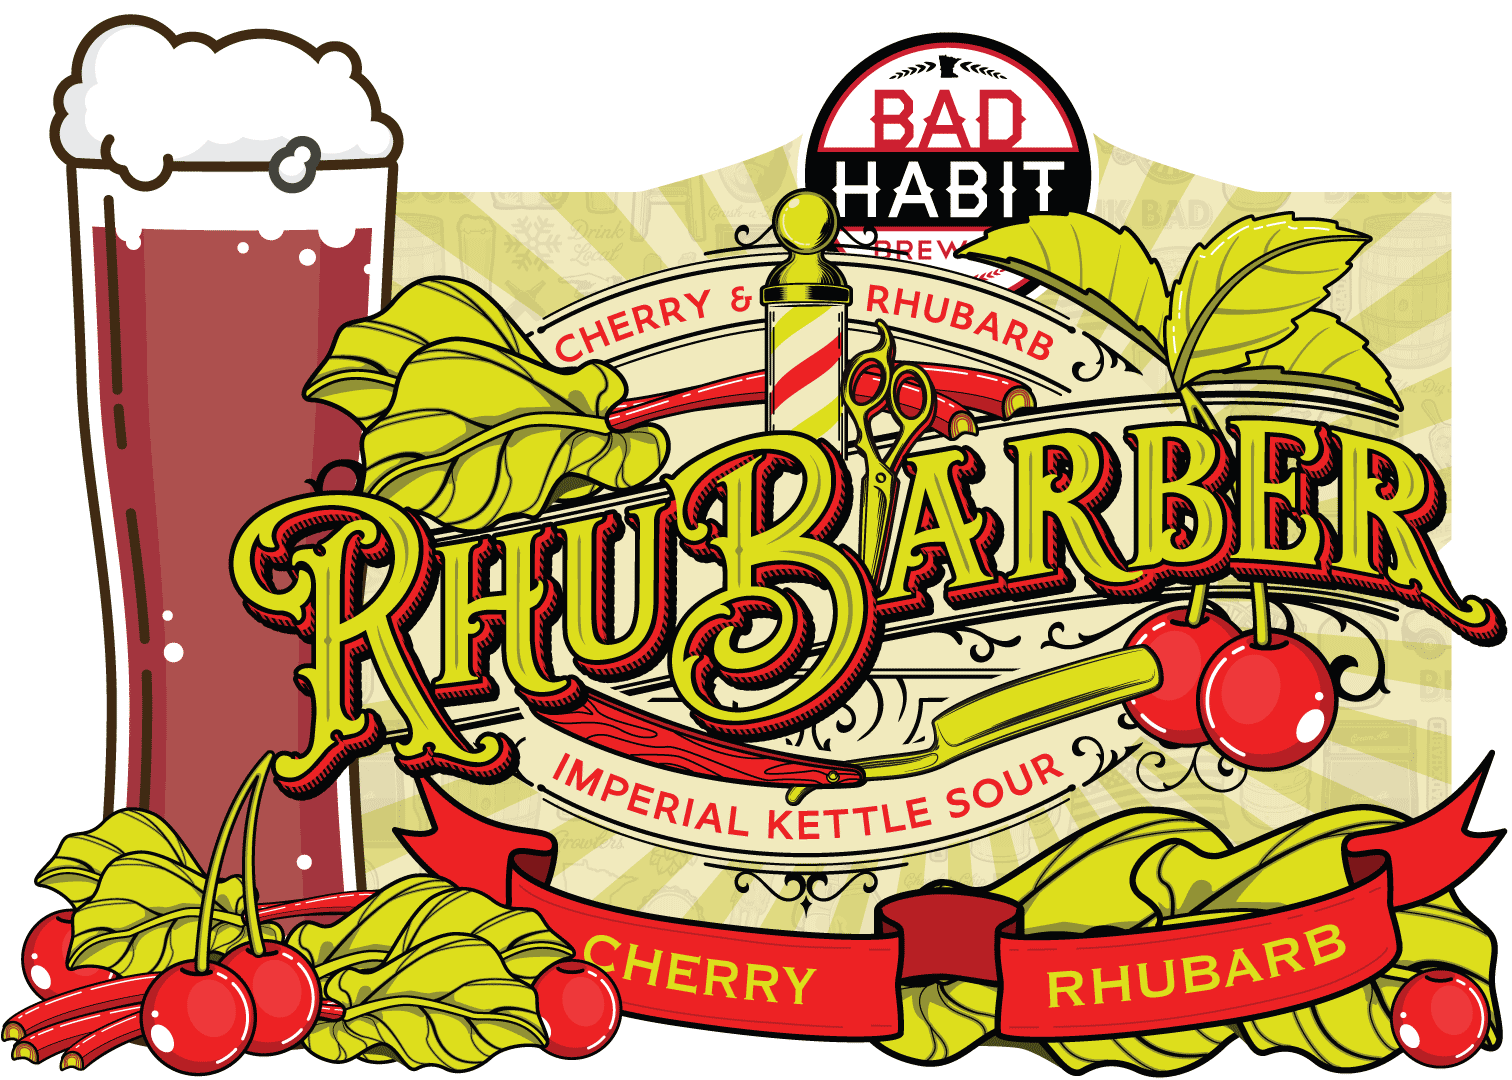 RHUBARBER - Fruited Imperial Kettle Sour | 8% ABVFruited with cherry & rhubarb, this kettle sour looks good & tastes good.